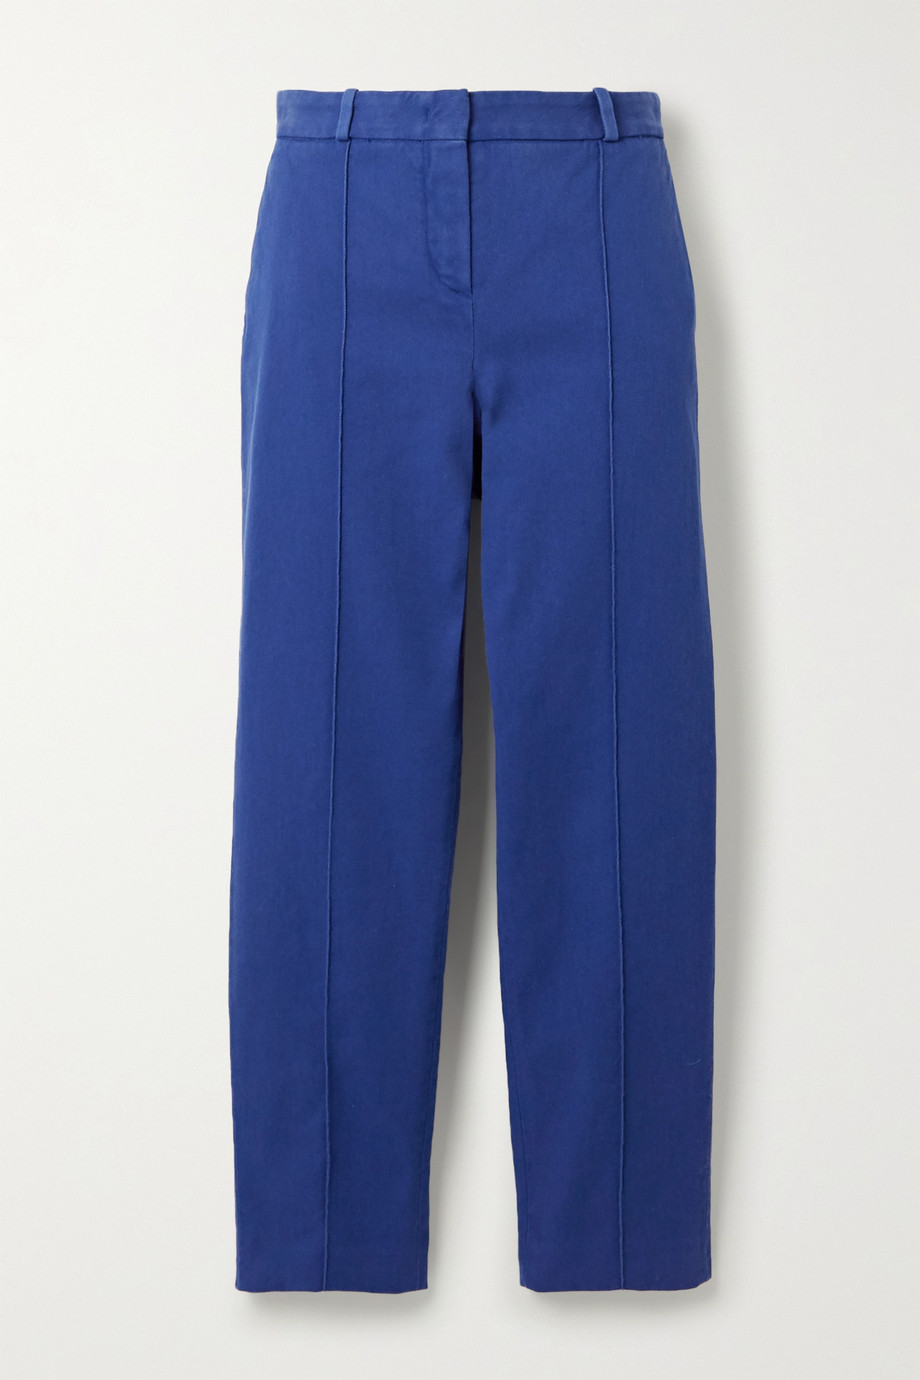 Loro Piana Stretch-cotton twill slim-leg pants